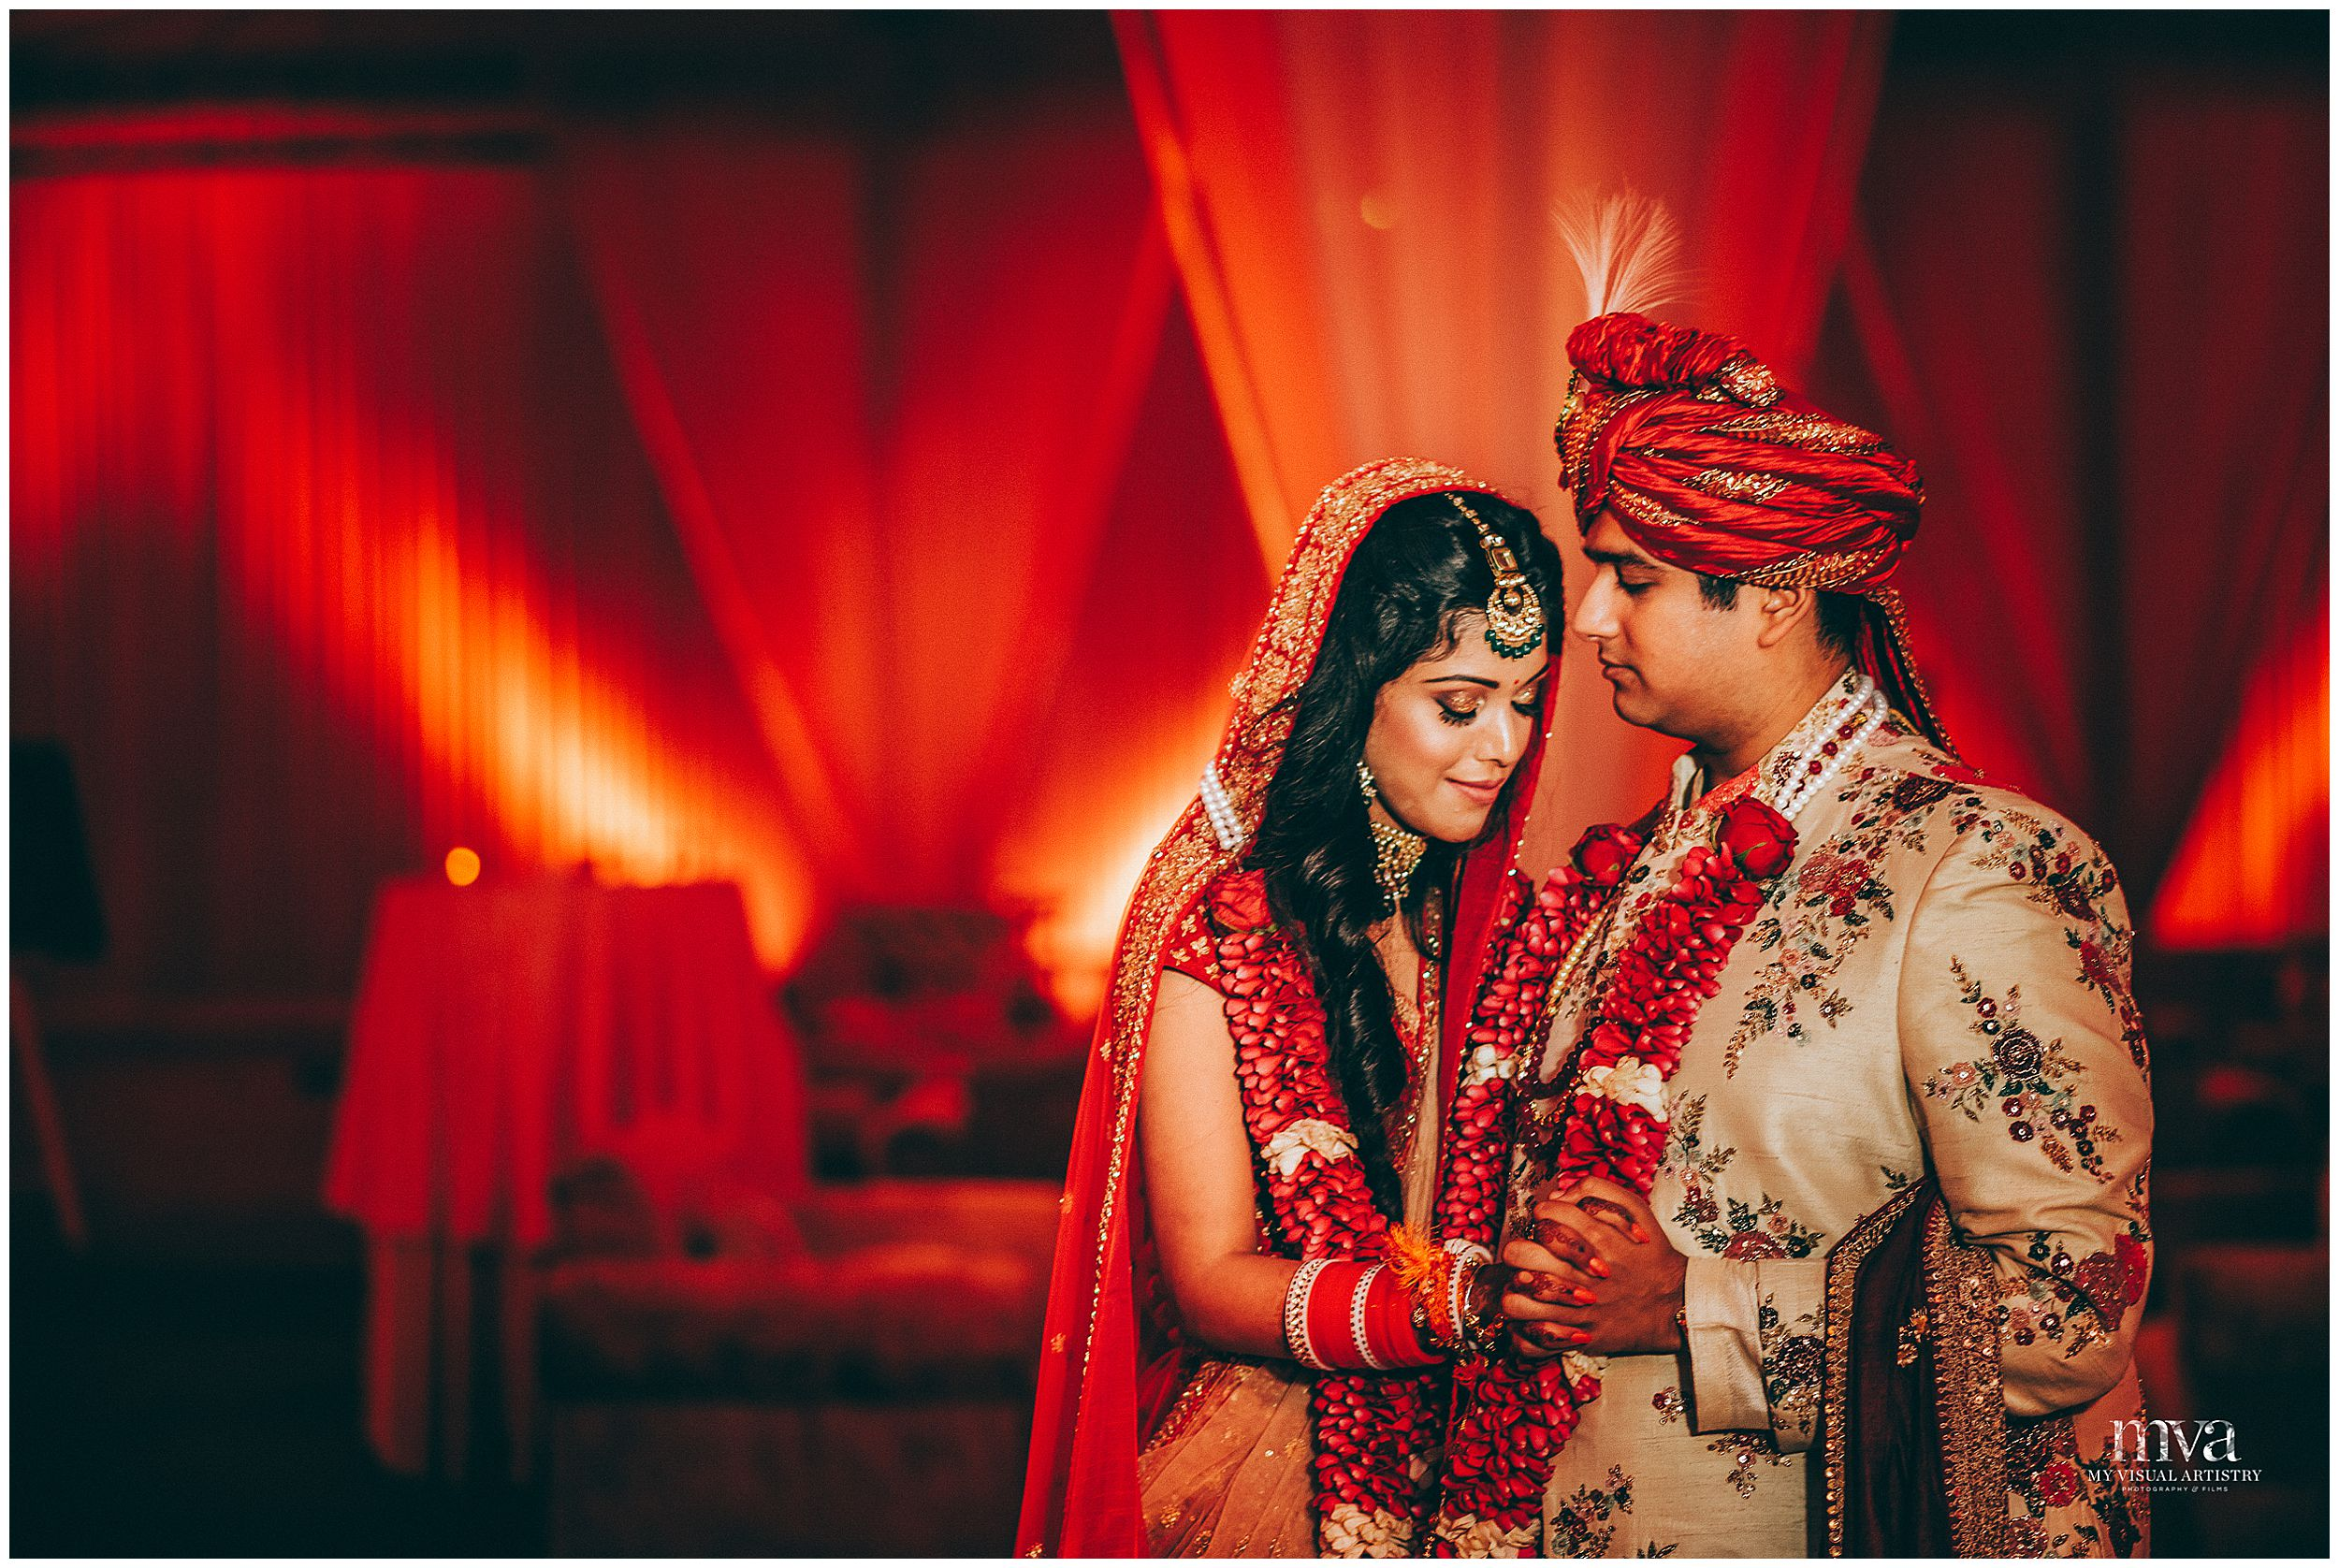 SIDDARTH_SAKSHI_MYVISUALARTISTRY_WEDDING_PHOTOGRAPHY_MVA_EROSHANGRILA_DELHI_0003.jpg